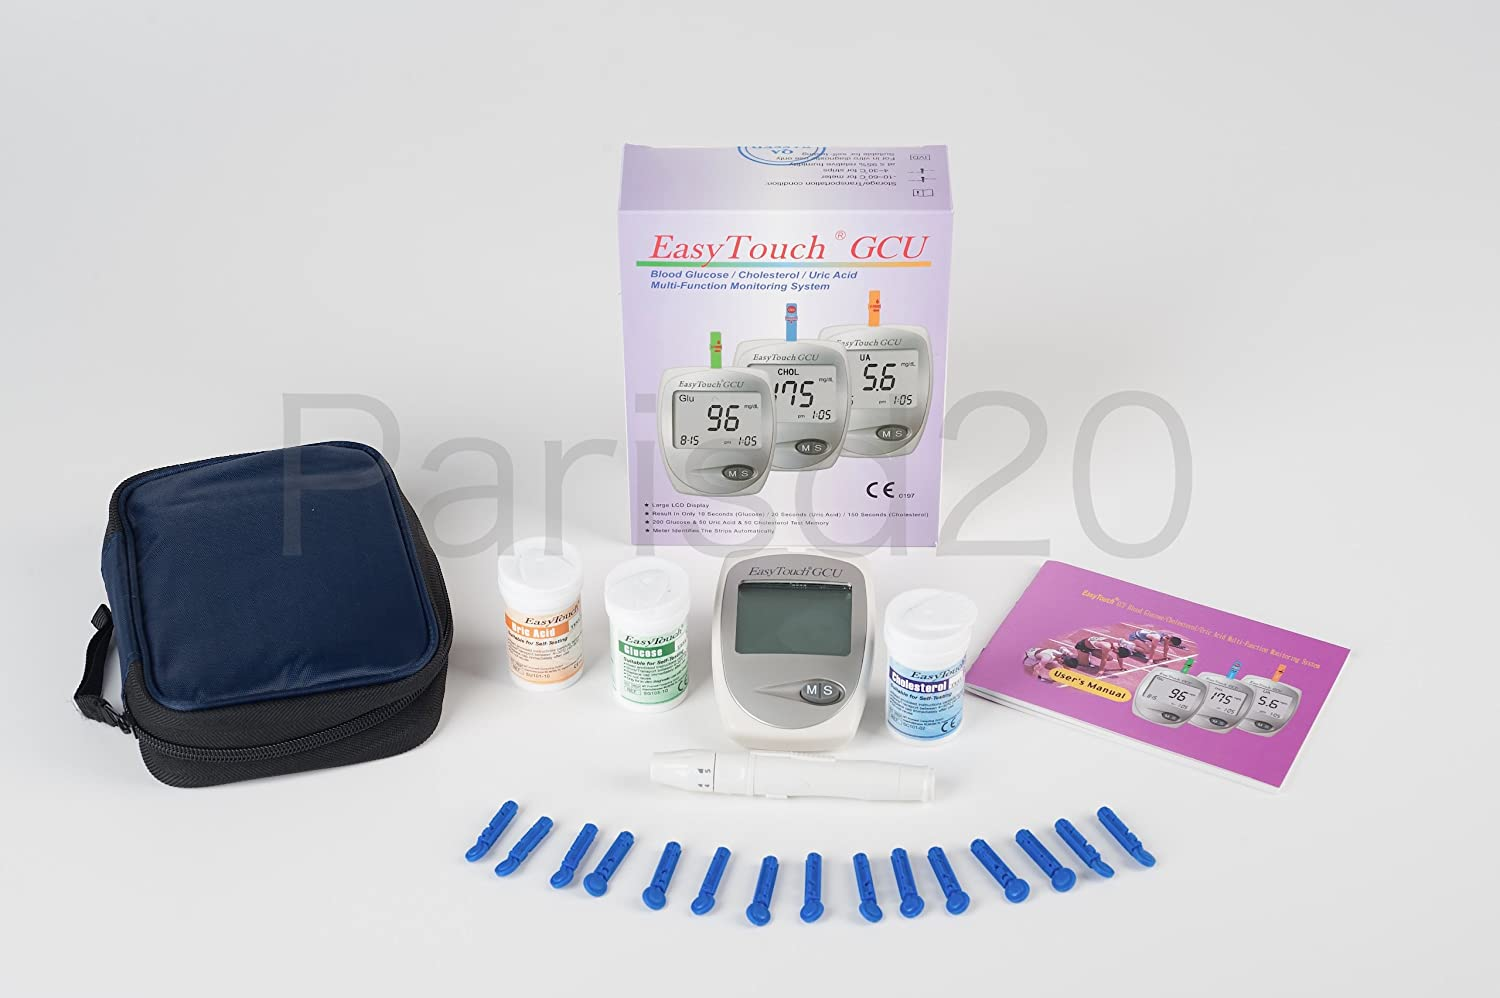 EasyTouch GCU Multi Function Monitoring System Easy